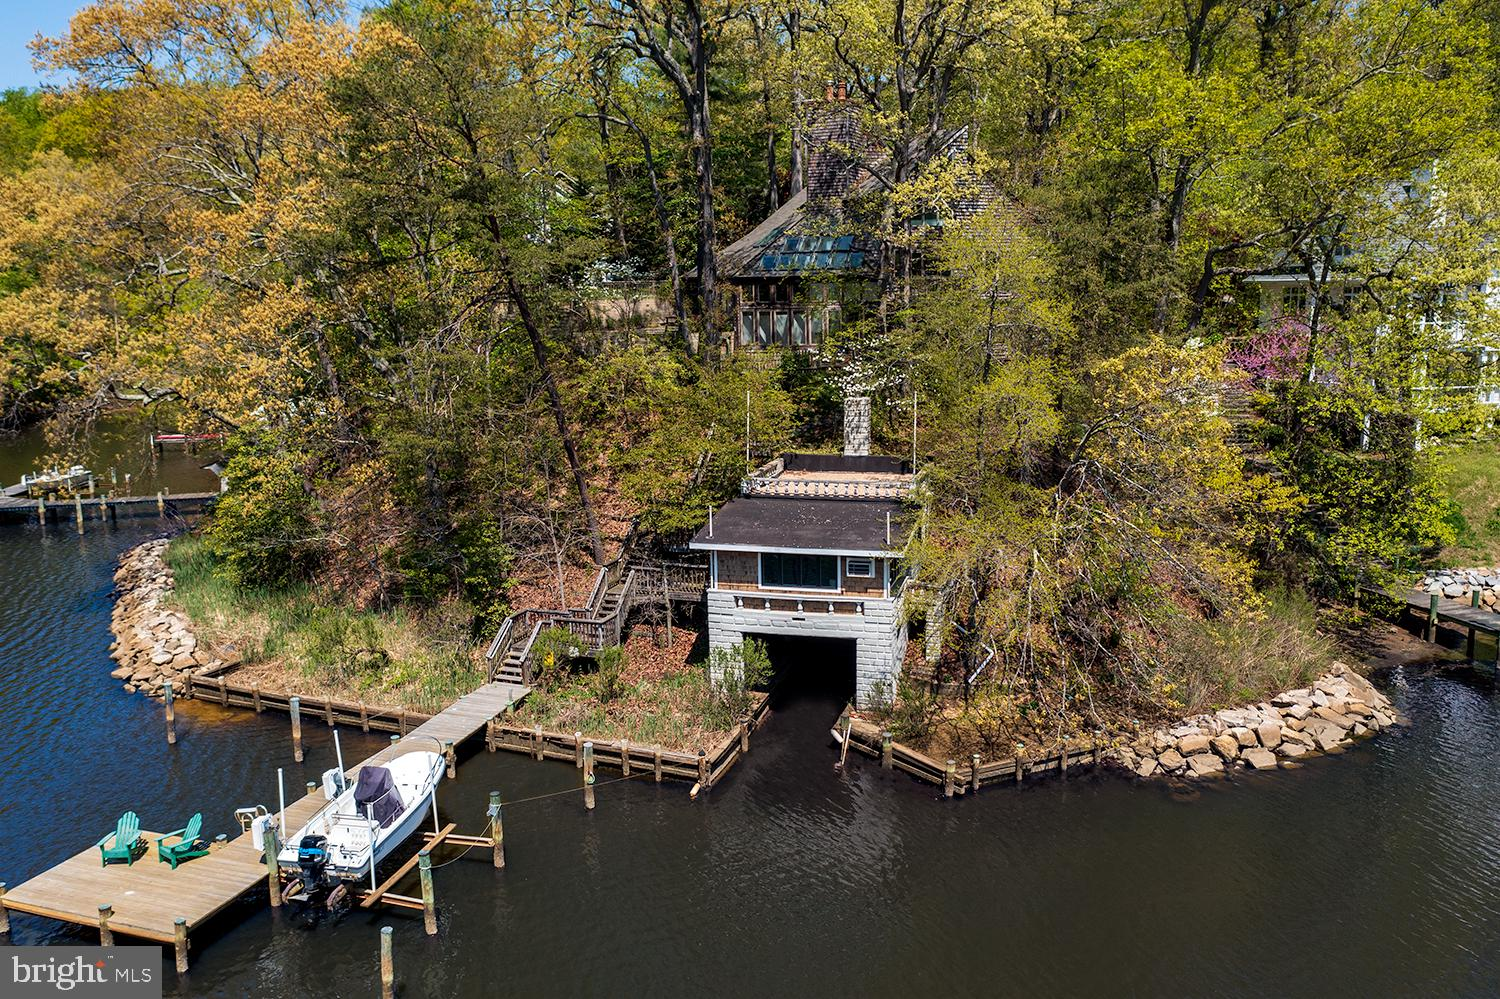 The Consummate Private Epping Forest Escape! Contemporary home with 5 Levels of Living Space plus Loft with private Deep Water Pier, 10,000 lb boat lift & RARE boat house with renovated waterfront party room all in One of Annapolis's prime real estate communities!  Bulkheaded Shoreline,  rare flat sunny yard space perfect for gardening  and expansive outside patio space for summer entertaining and barbeques overlooking scenic Saltworks Creek off of the Severn River.  Waterfront Great Room with balcony & Woodburning fireplace. Fully renovated Kitchen, Anderson Doors & Pella Windows, Updated and Zoned Heat and AC and Roof.   Entrance/Main Level Bedroom And Full Bath.   2 Car Garage Conveys with deeded Easment.   Epping Forest is a Gated Waterfront Community on the Severn River with a  communal beach, Clubhouse, Tennis, Marina and the best neighbors you can find in Annapolis!  Year around activities include 4th of July Fireworks,  Oyster & Bull Roast, Boat Club,  Summer Volleyball League, Kayaks & summer camps.  Come Experience the best  Chesapeake Bay Maritime Annapolitan Lifestyle around!